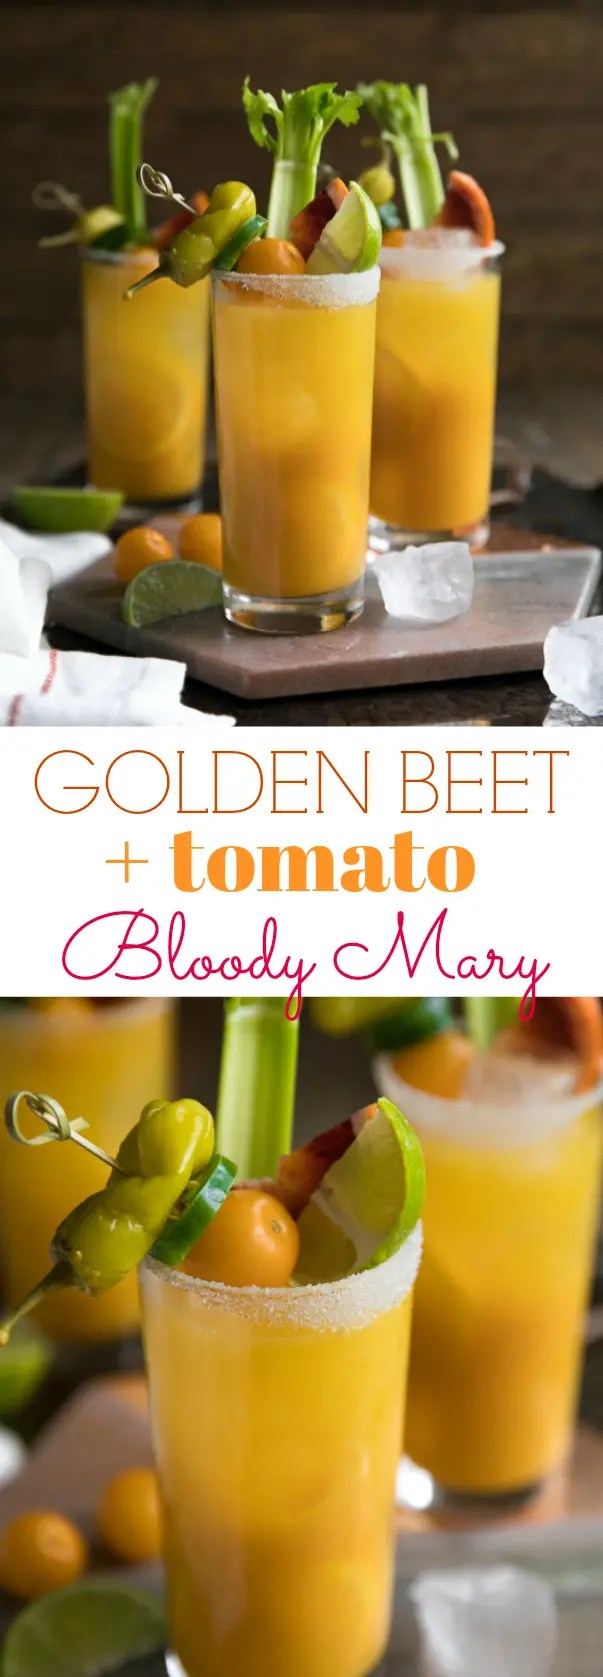 Golden Beet and Tomato Bloody Mary. Cheersto the weekend with this nutrient (and vodka) filled Golden Beet and Tomato Bloody Mary. Made with golden beets, yellow heirloom tomatoes, vodka, and all the fixings, these beautiful Bloody Mary\'s are delicious, and just what your next brunch party calls for. via @theforkedspoon #bloodymary #beets #goldenbeets #brunch #recipe #cocktailrecipe #vodka #easyrecipe #breakfast | For this recipe and more visit, https://theforkedspoon.com/